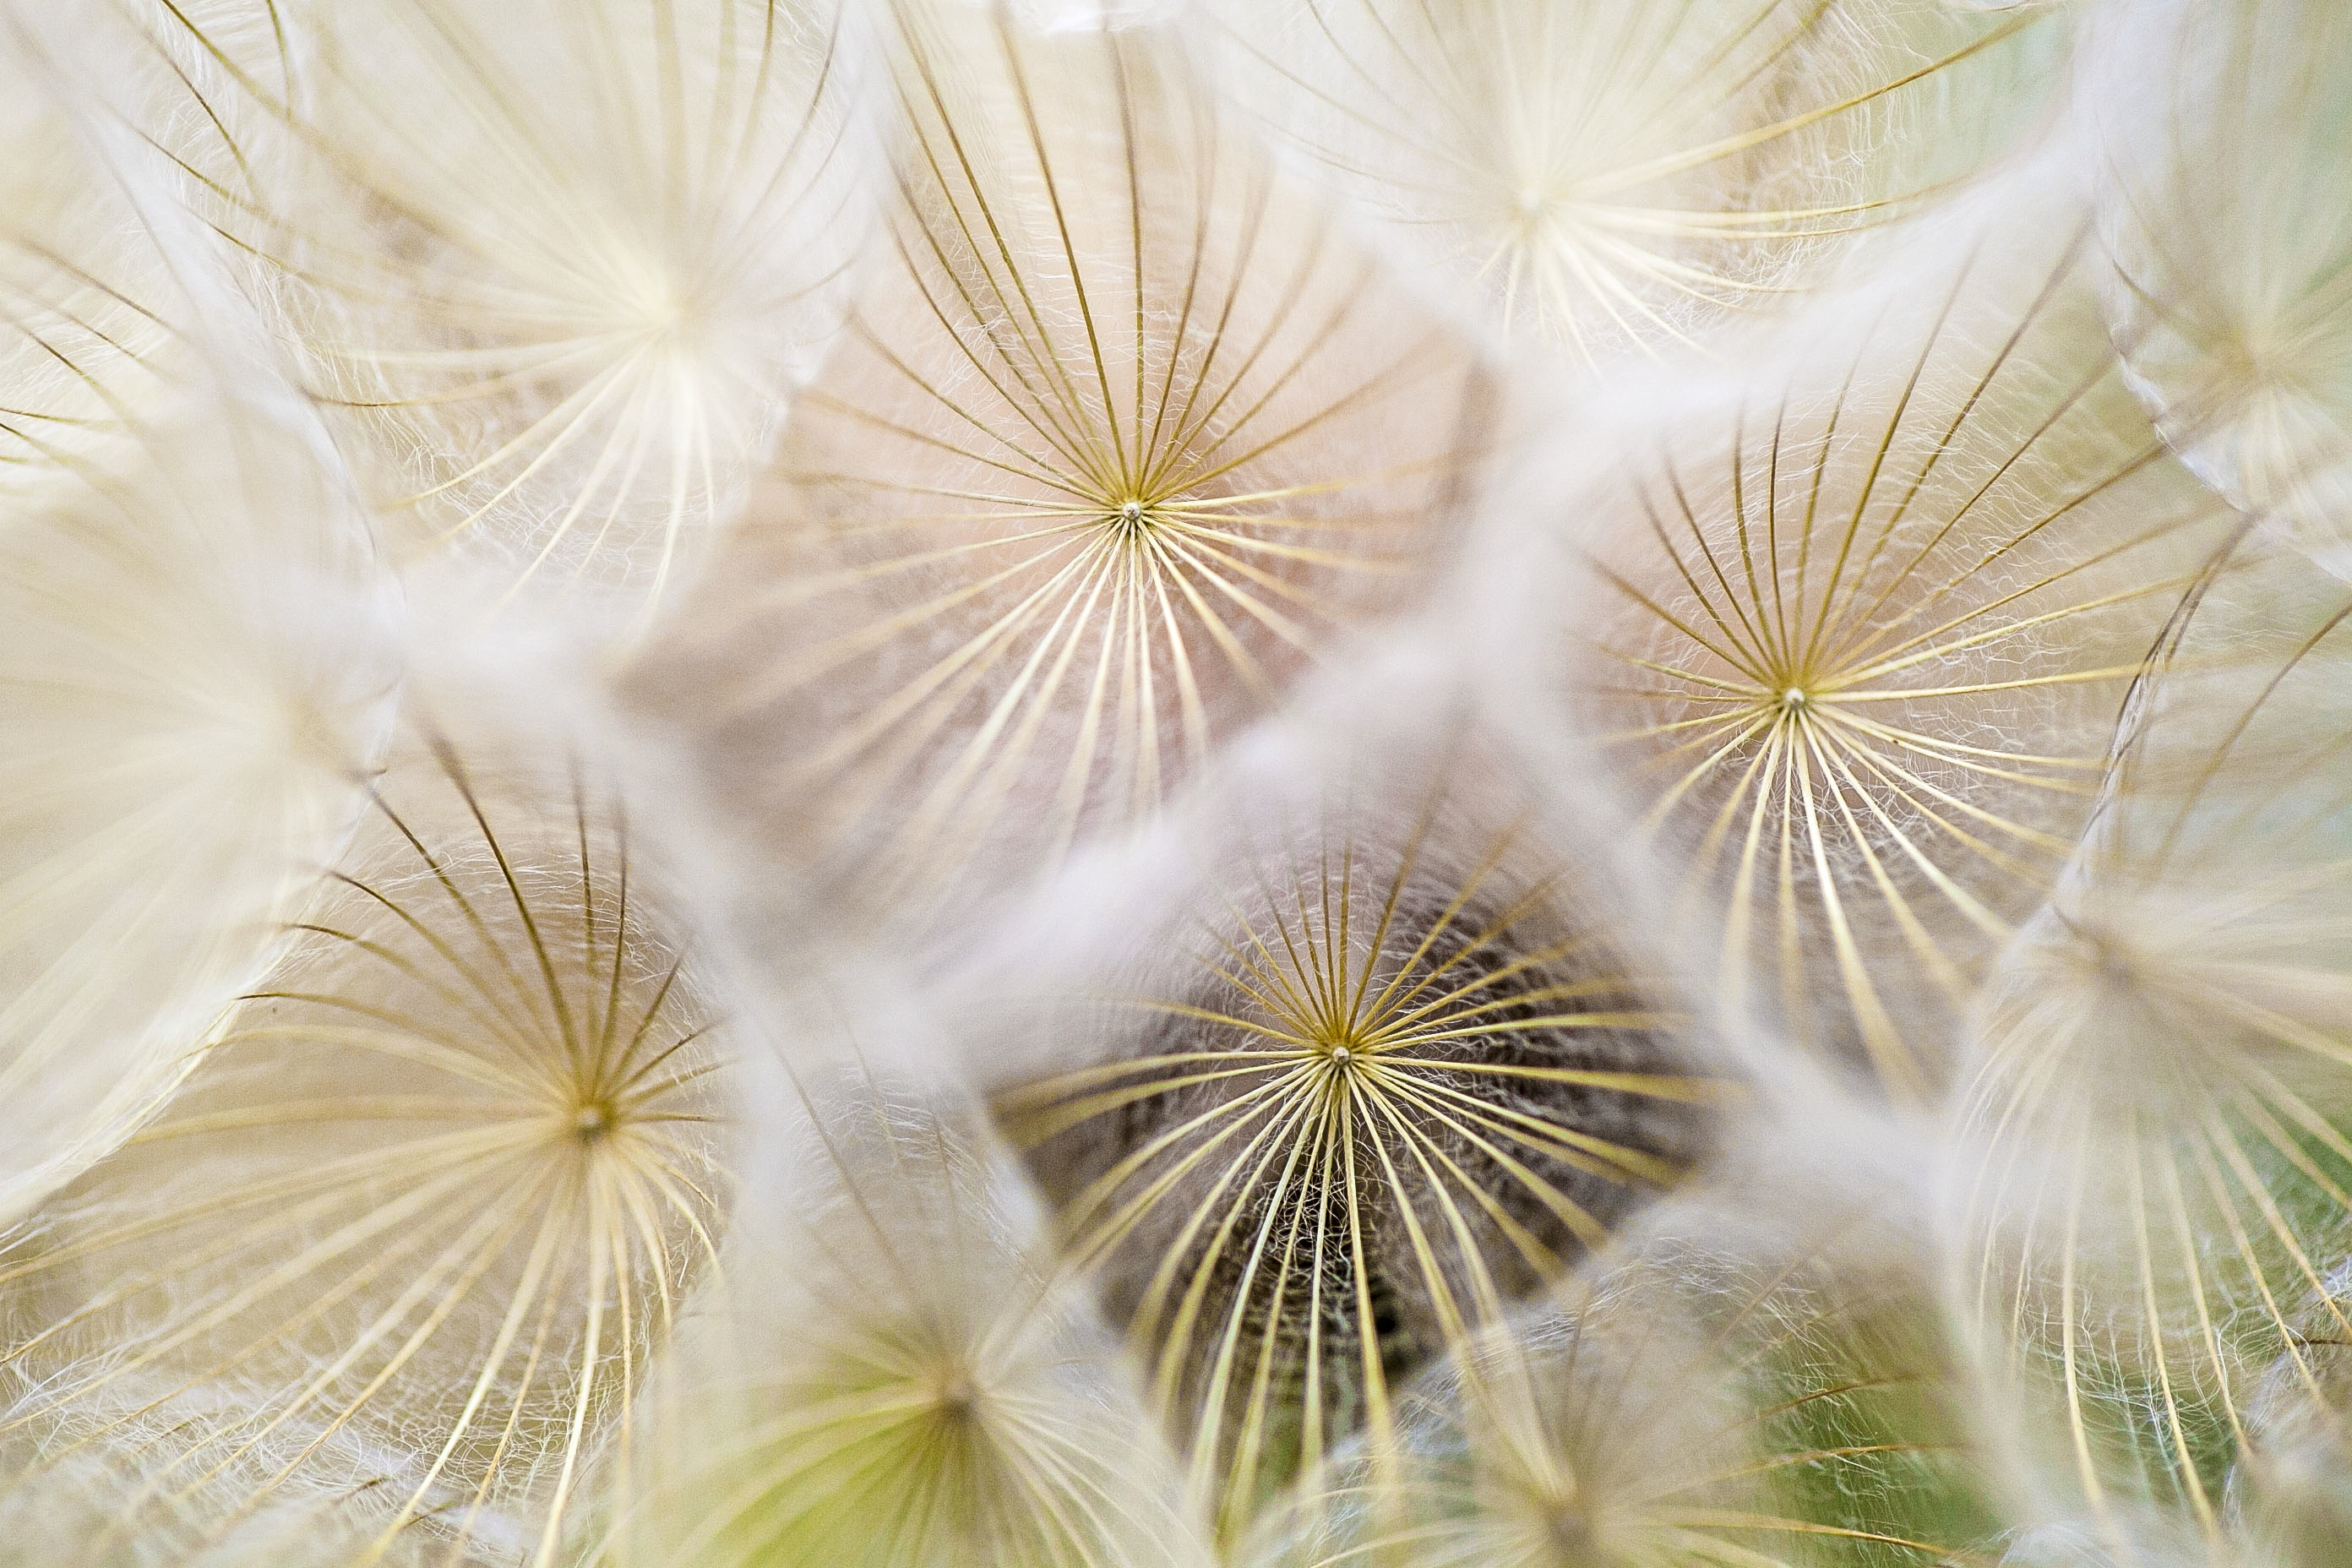 Net, Group, Plant, Silk, Smooth, HQ Photo